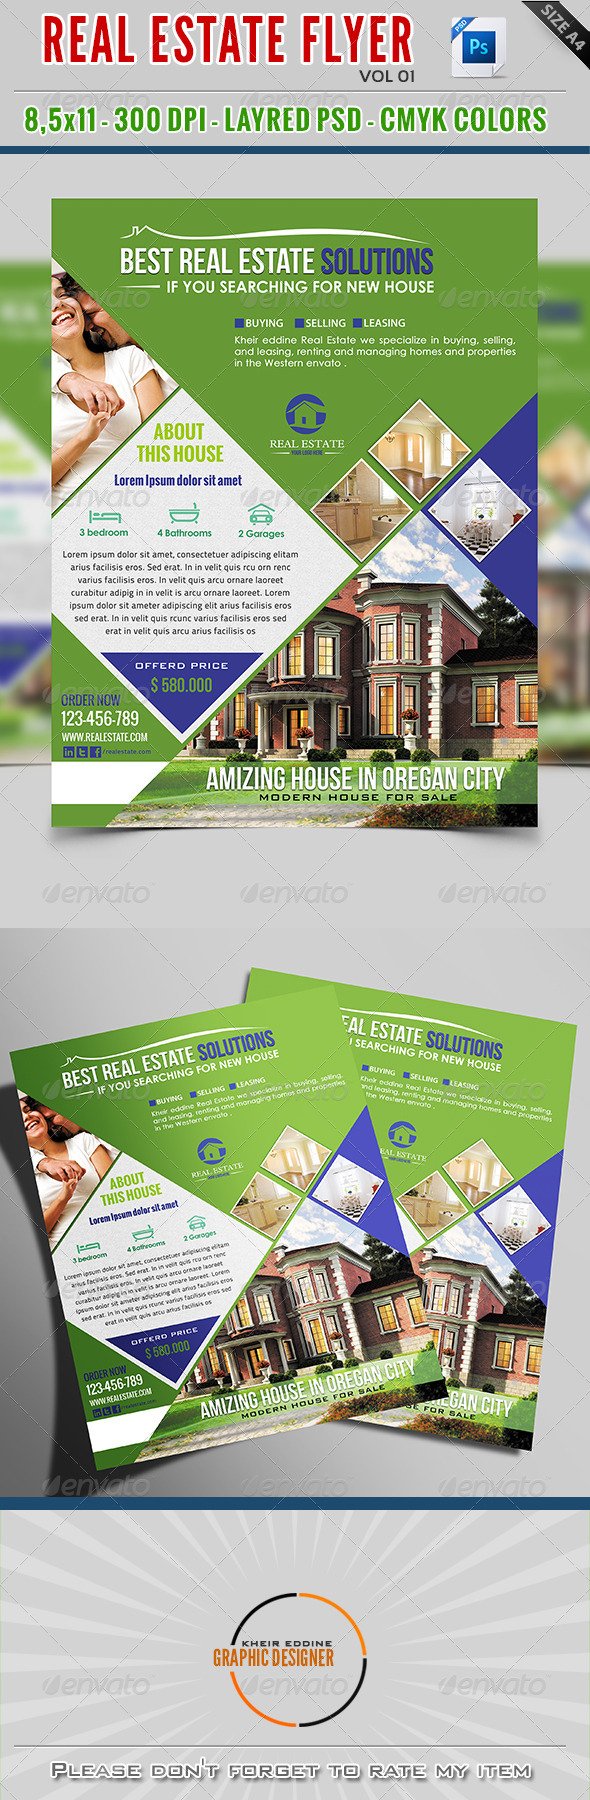 GraphicRiver Real Estate Flyer Vol 01 7949954